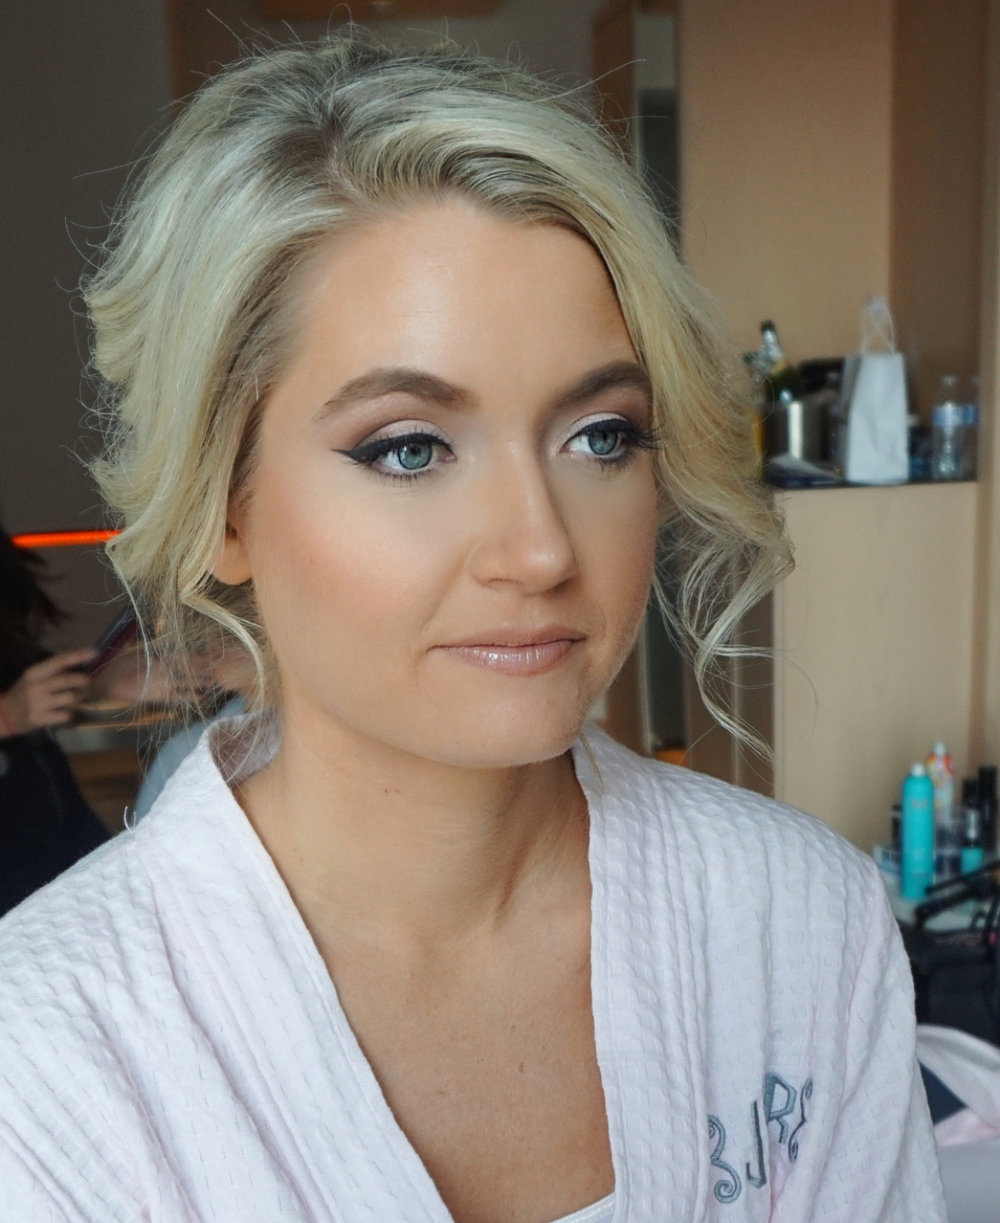 Makeup by Amela Bego, Hair by Dee (Deanna) Mujagic